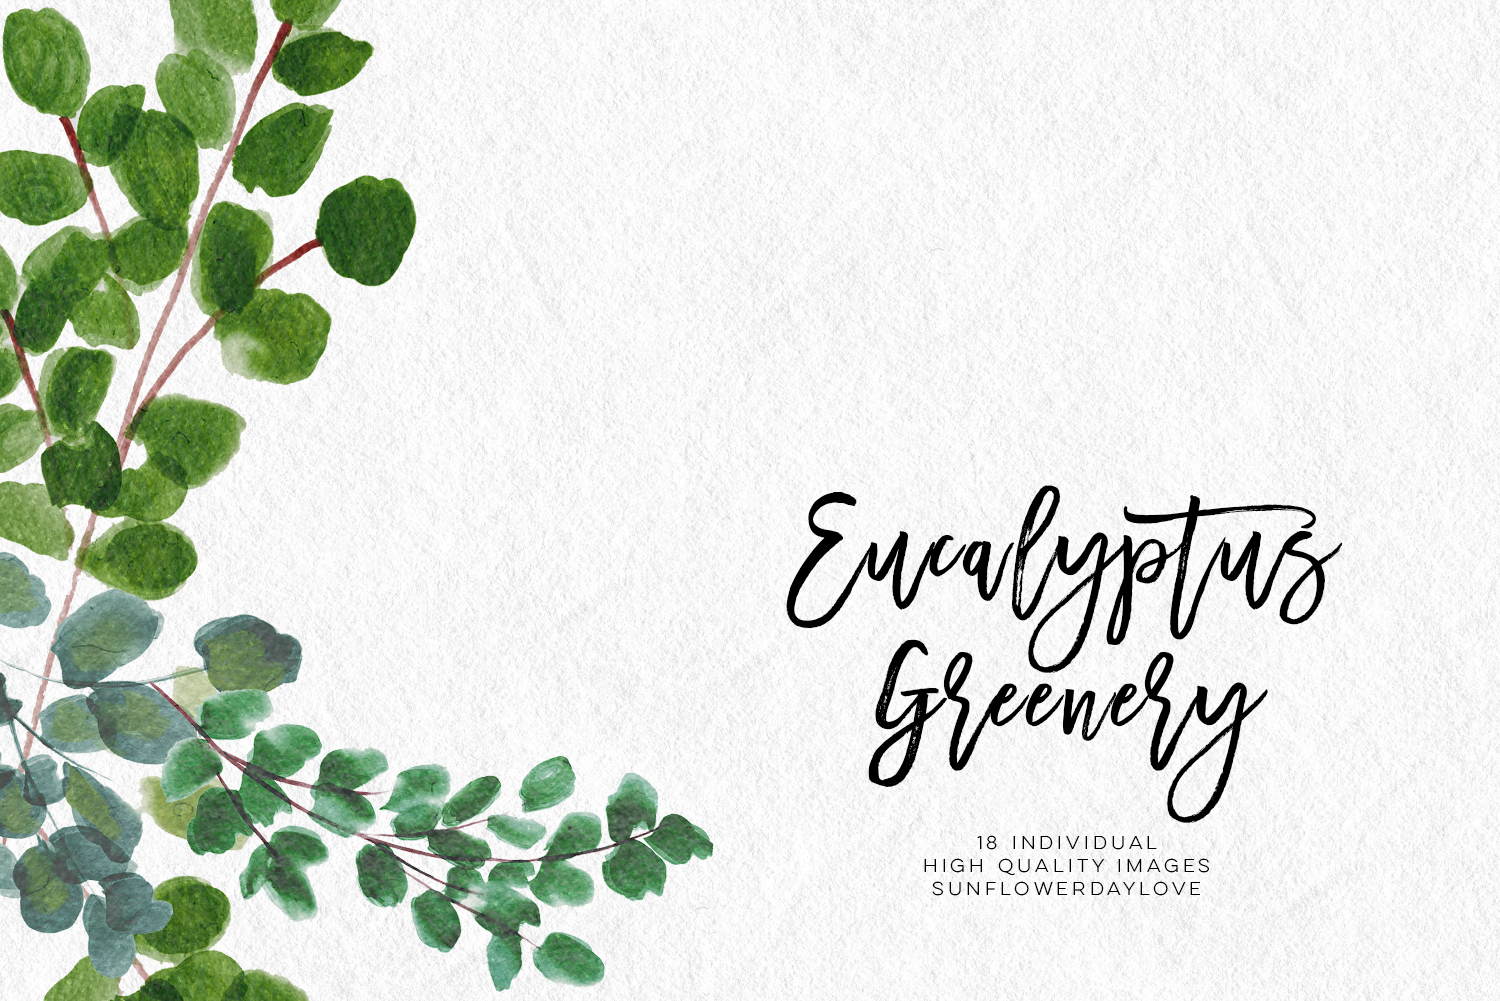 Watercolor greenery clipart library Greenery Leaf Watercolor clipart, Eucalyptus clipart, Watercolor greenery  flower, Watercolour botanical Wreath Leaves, Leaf clipart, wedding - Vsual library